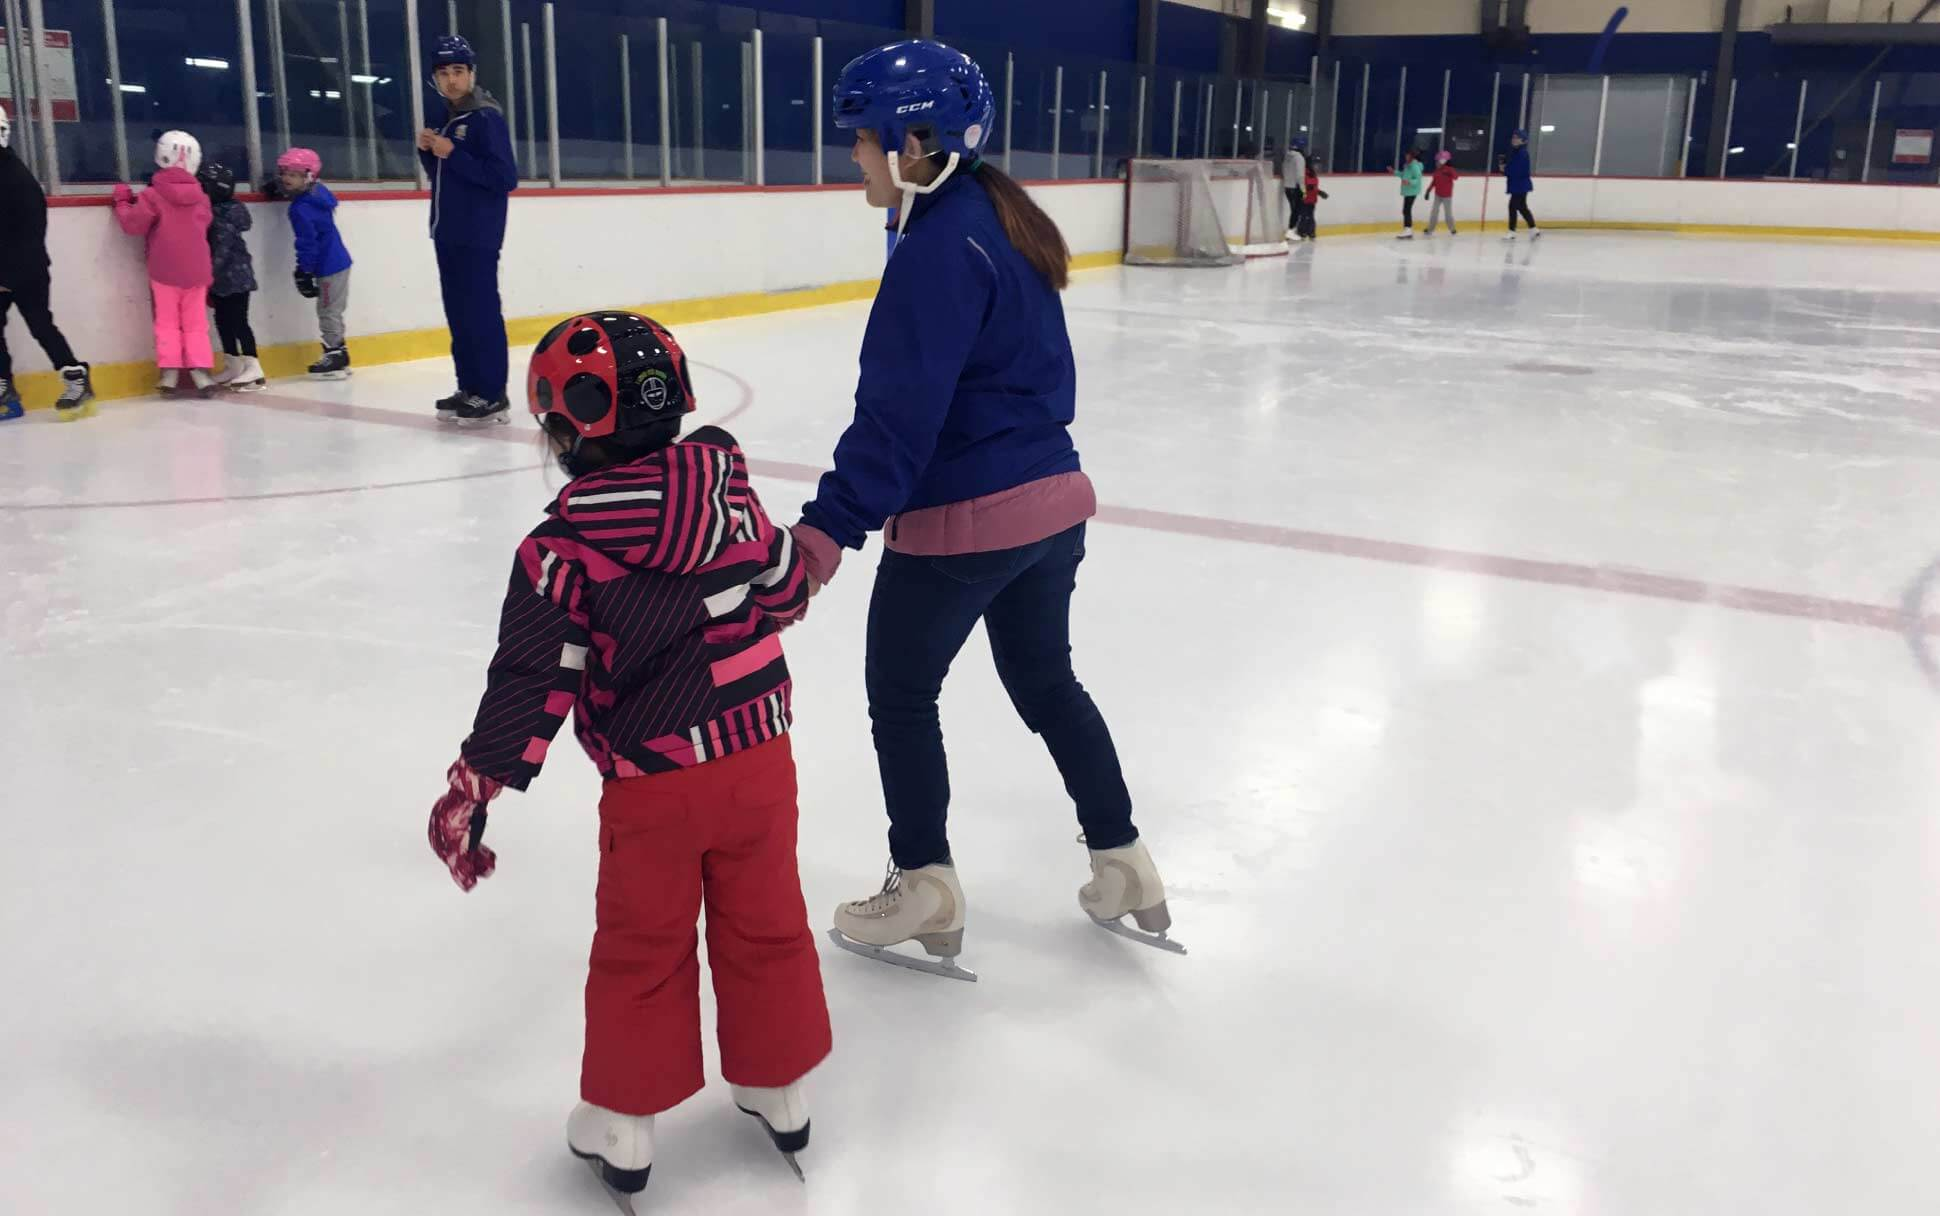 A woman and child skate on the ice rink at the Doug Mitchell Thunderbirds Sports Centre at UBC Vancouver.